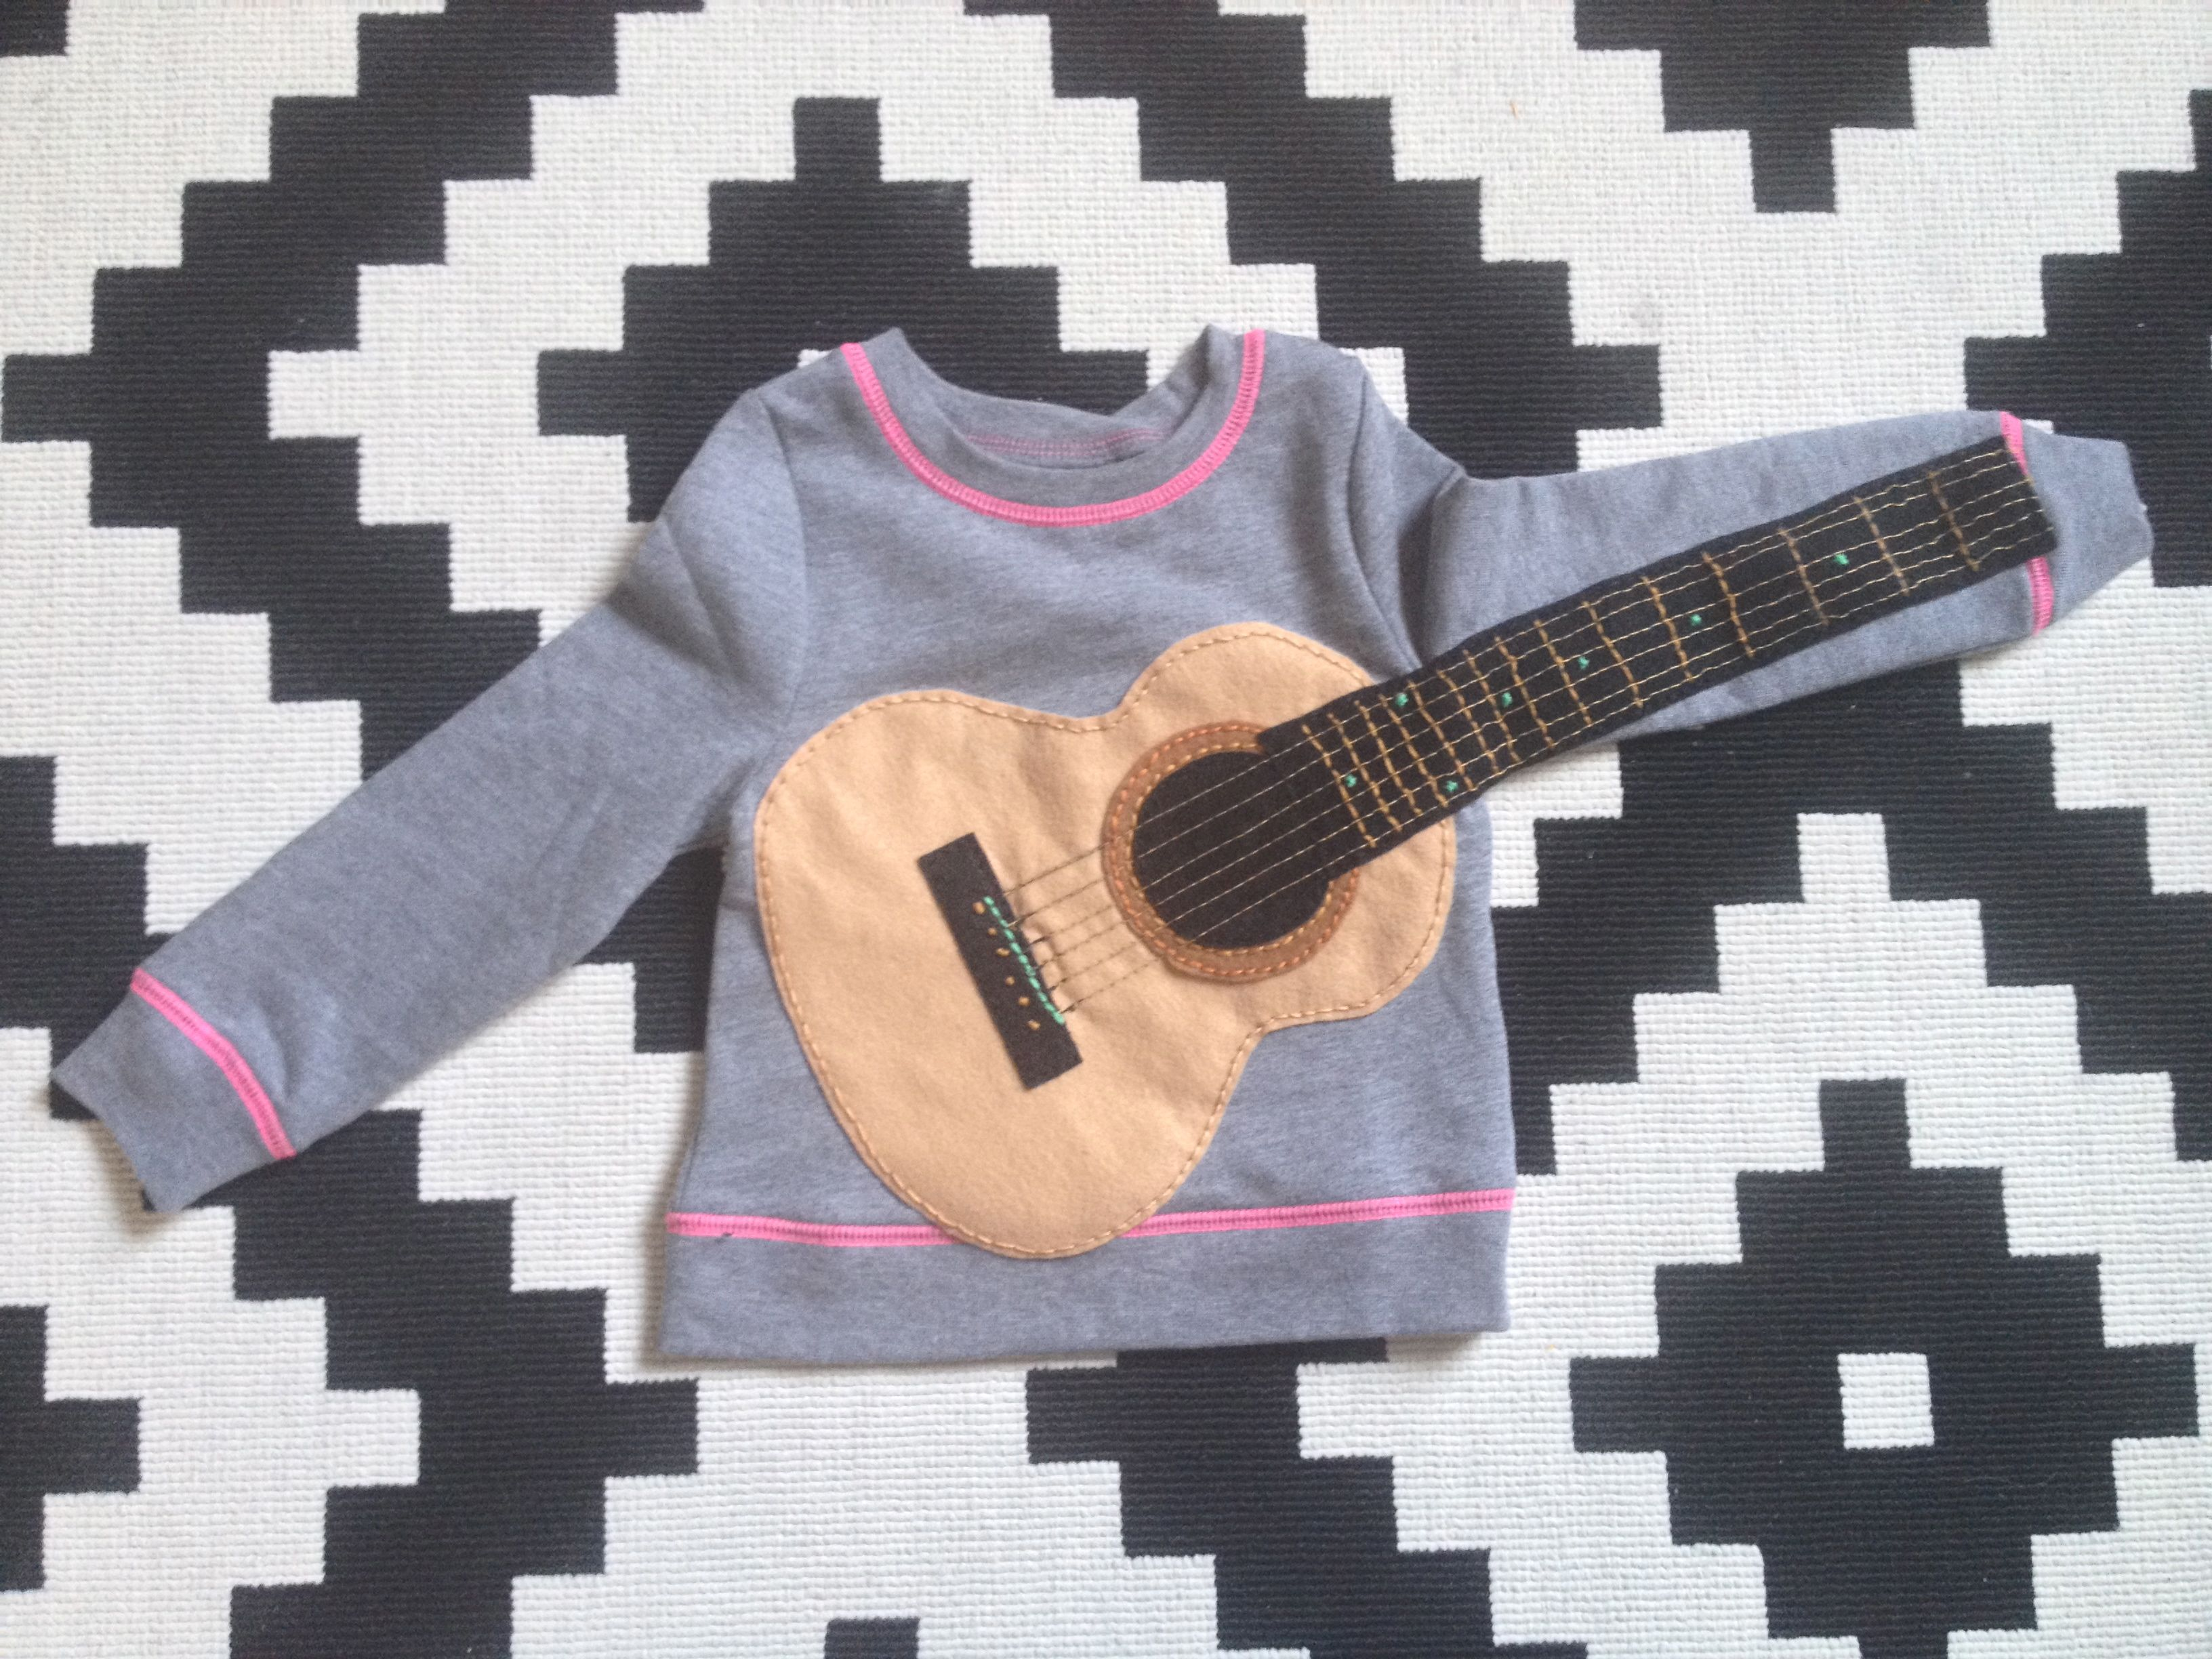 Homespun Love: Sew a Wearable Guitar